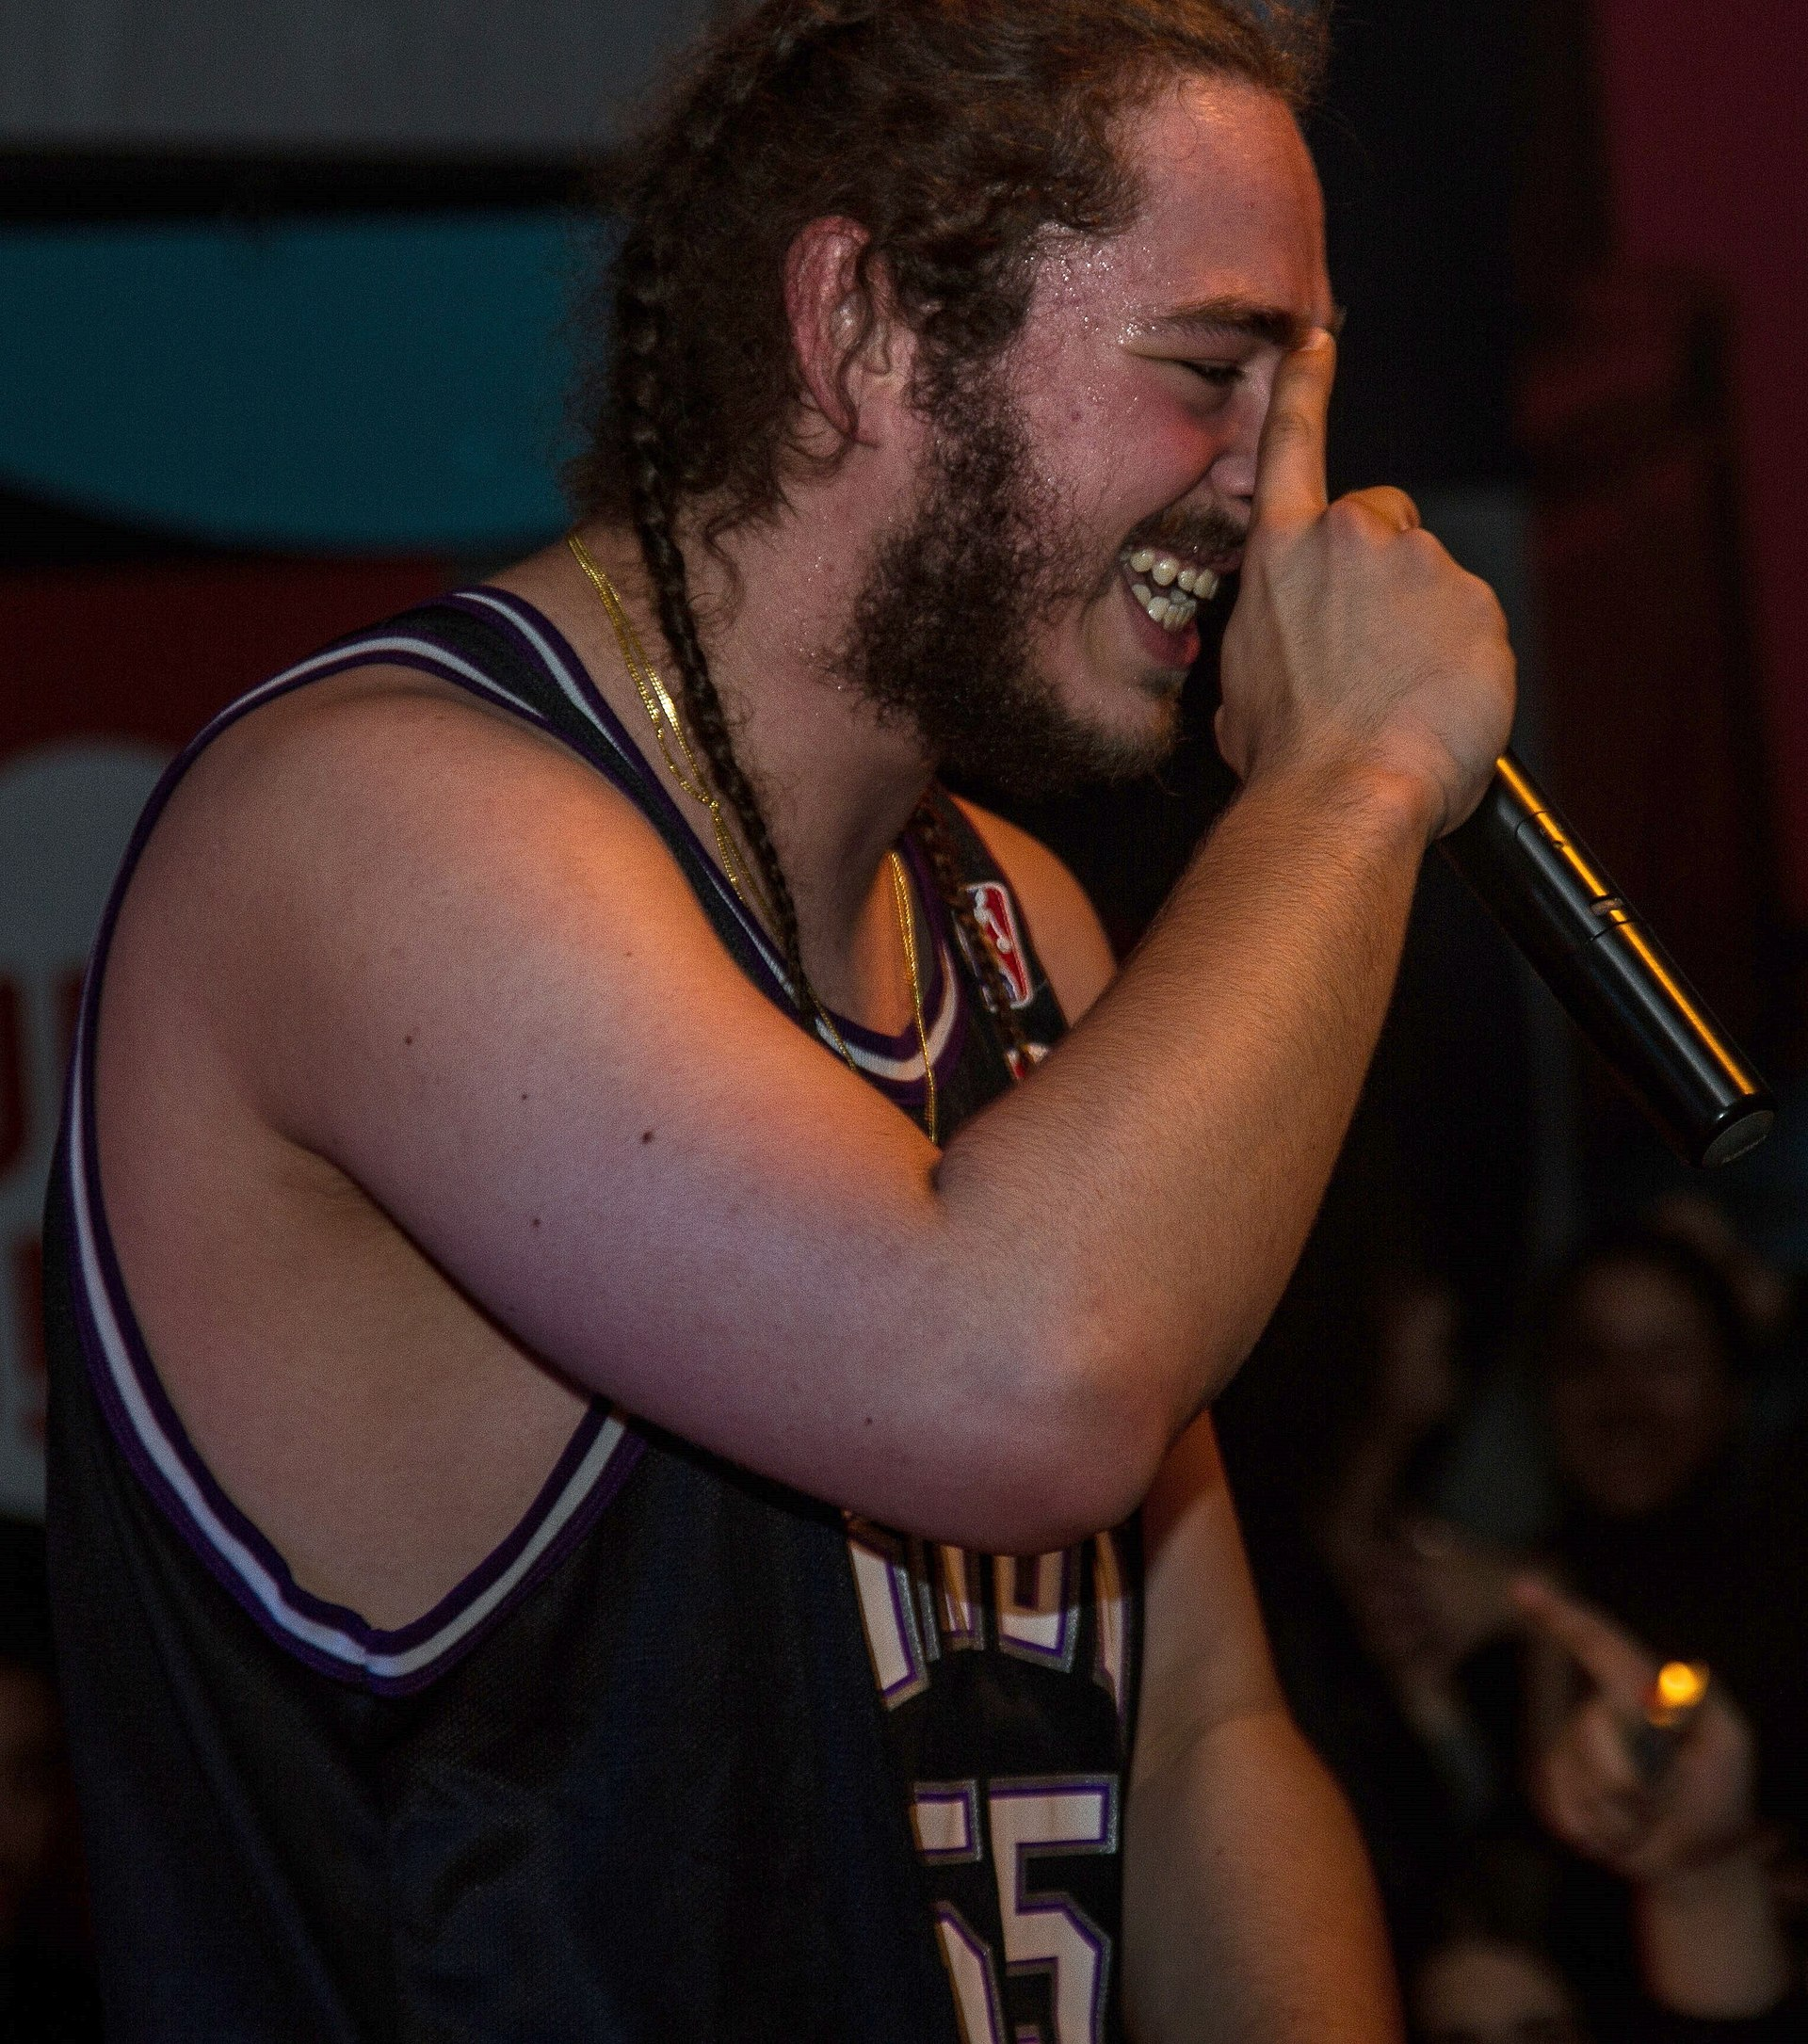 Post Malone Dad: Post Malone